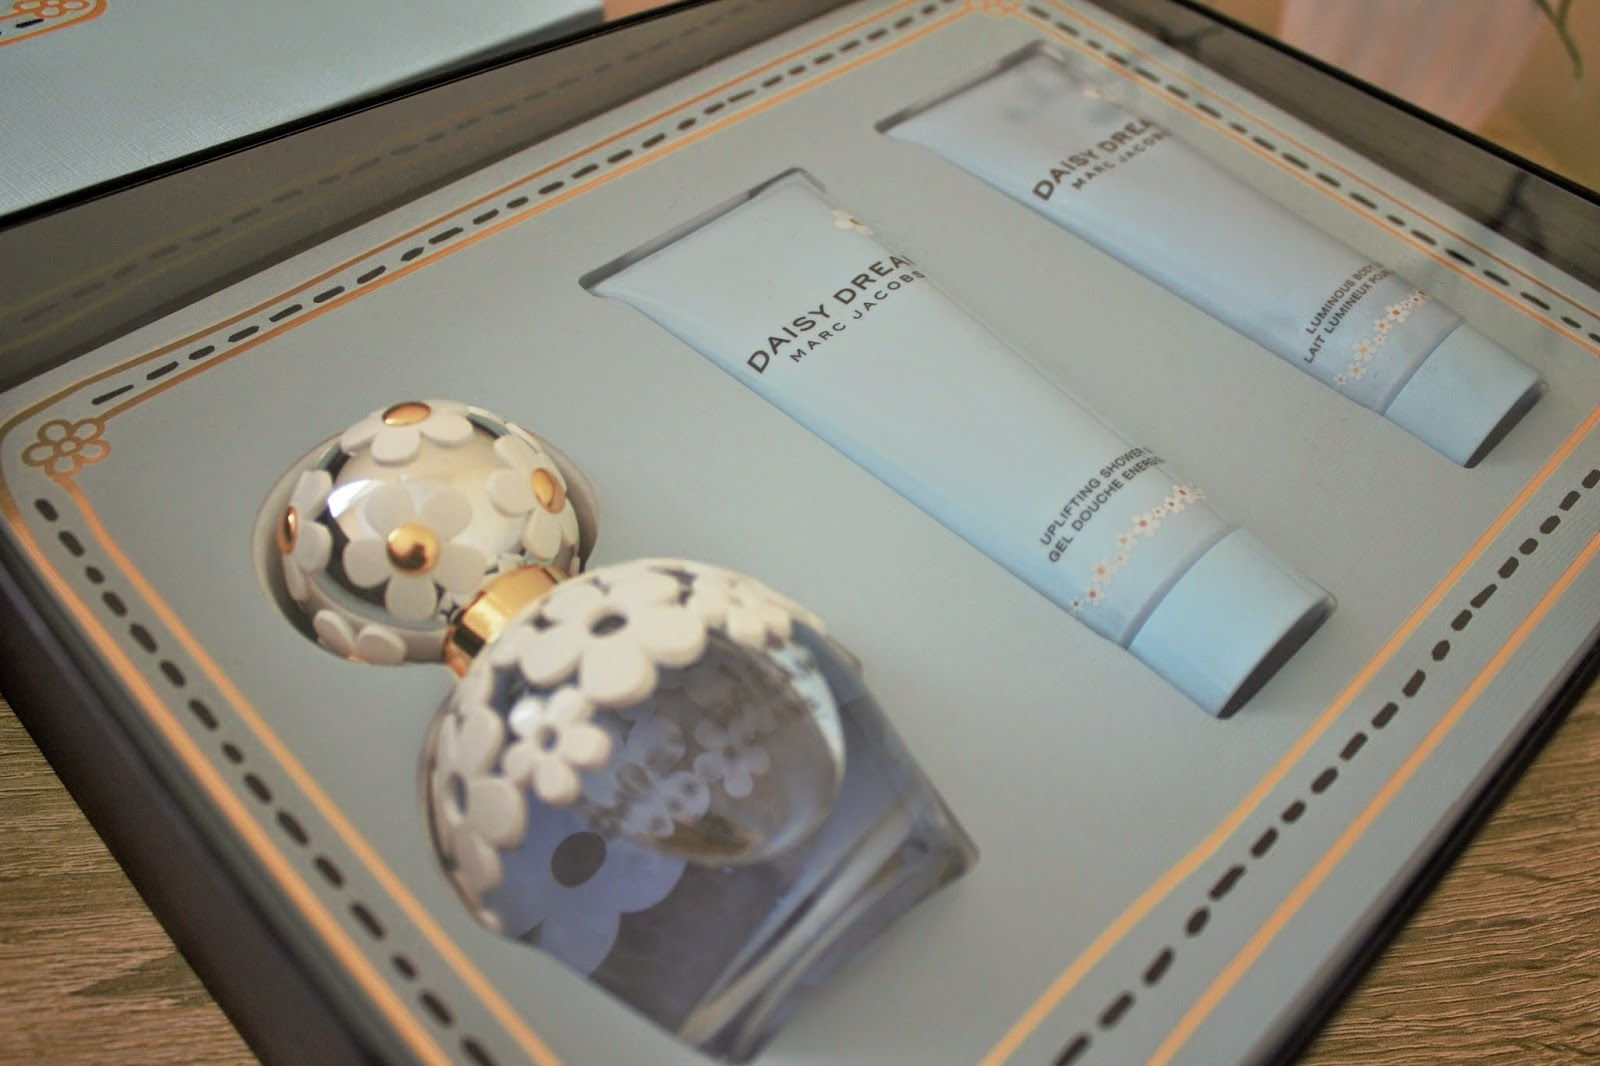 Marc Jacobs Daisy Dream Gift Set Giveaway